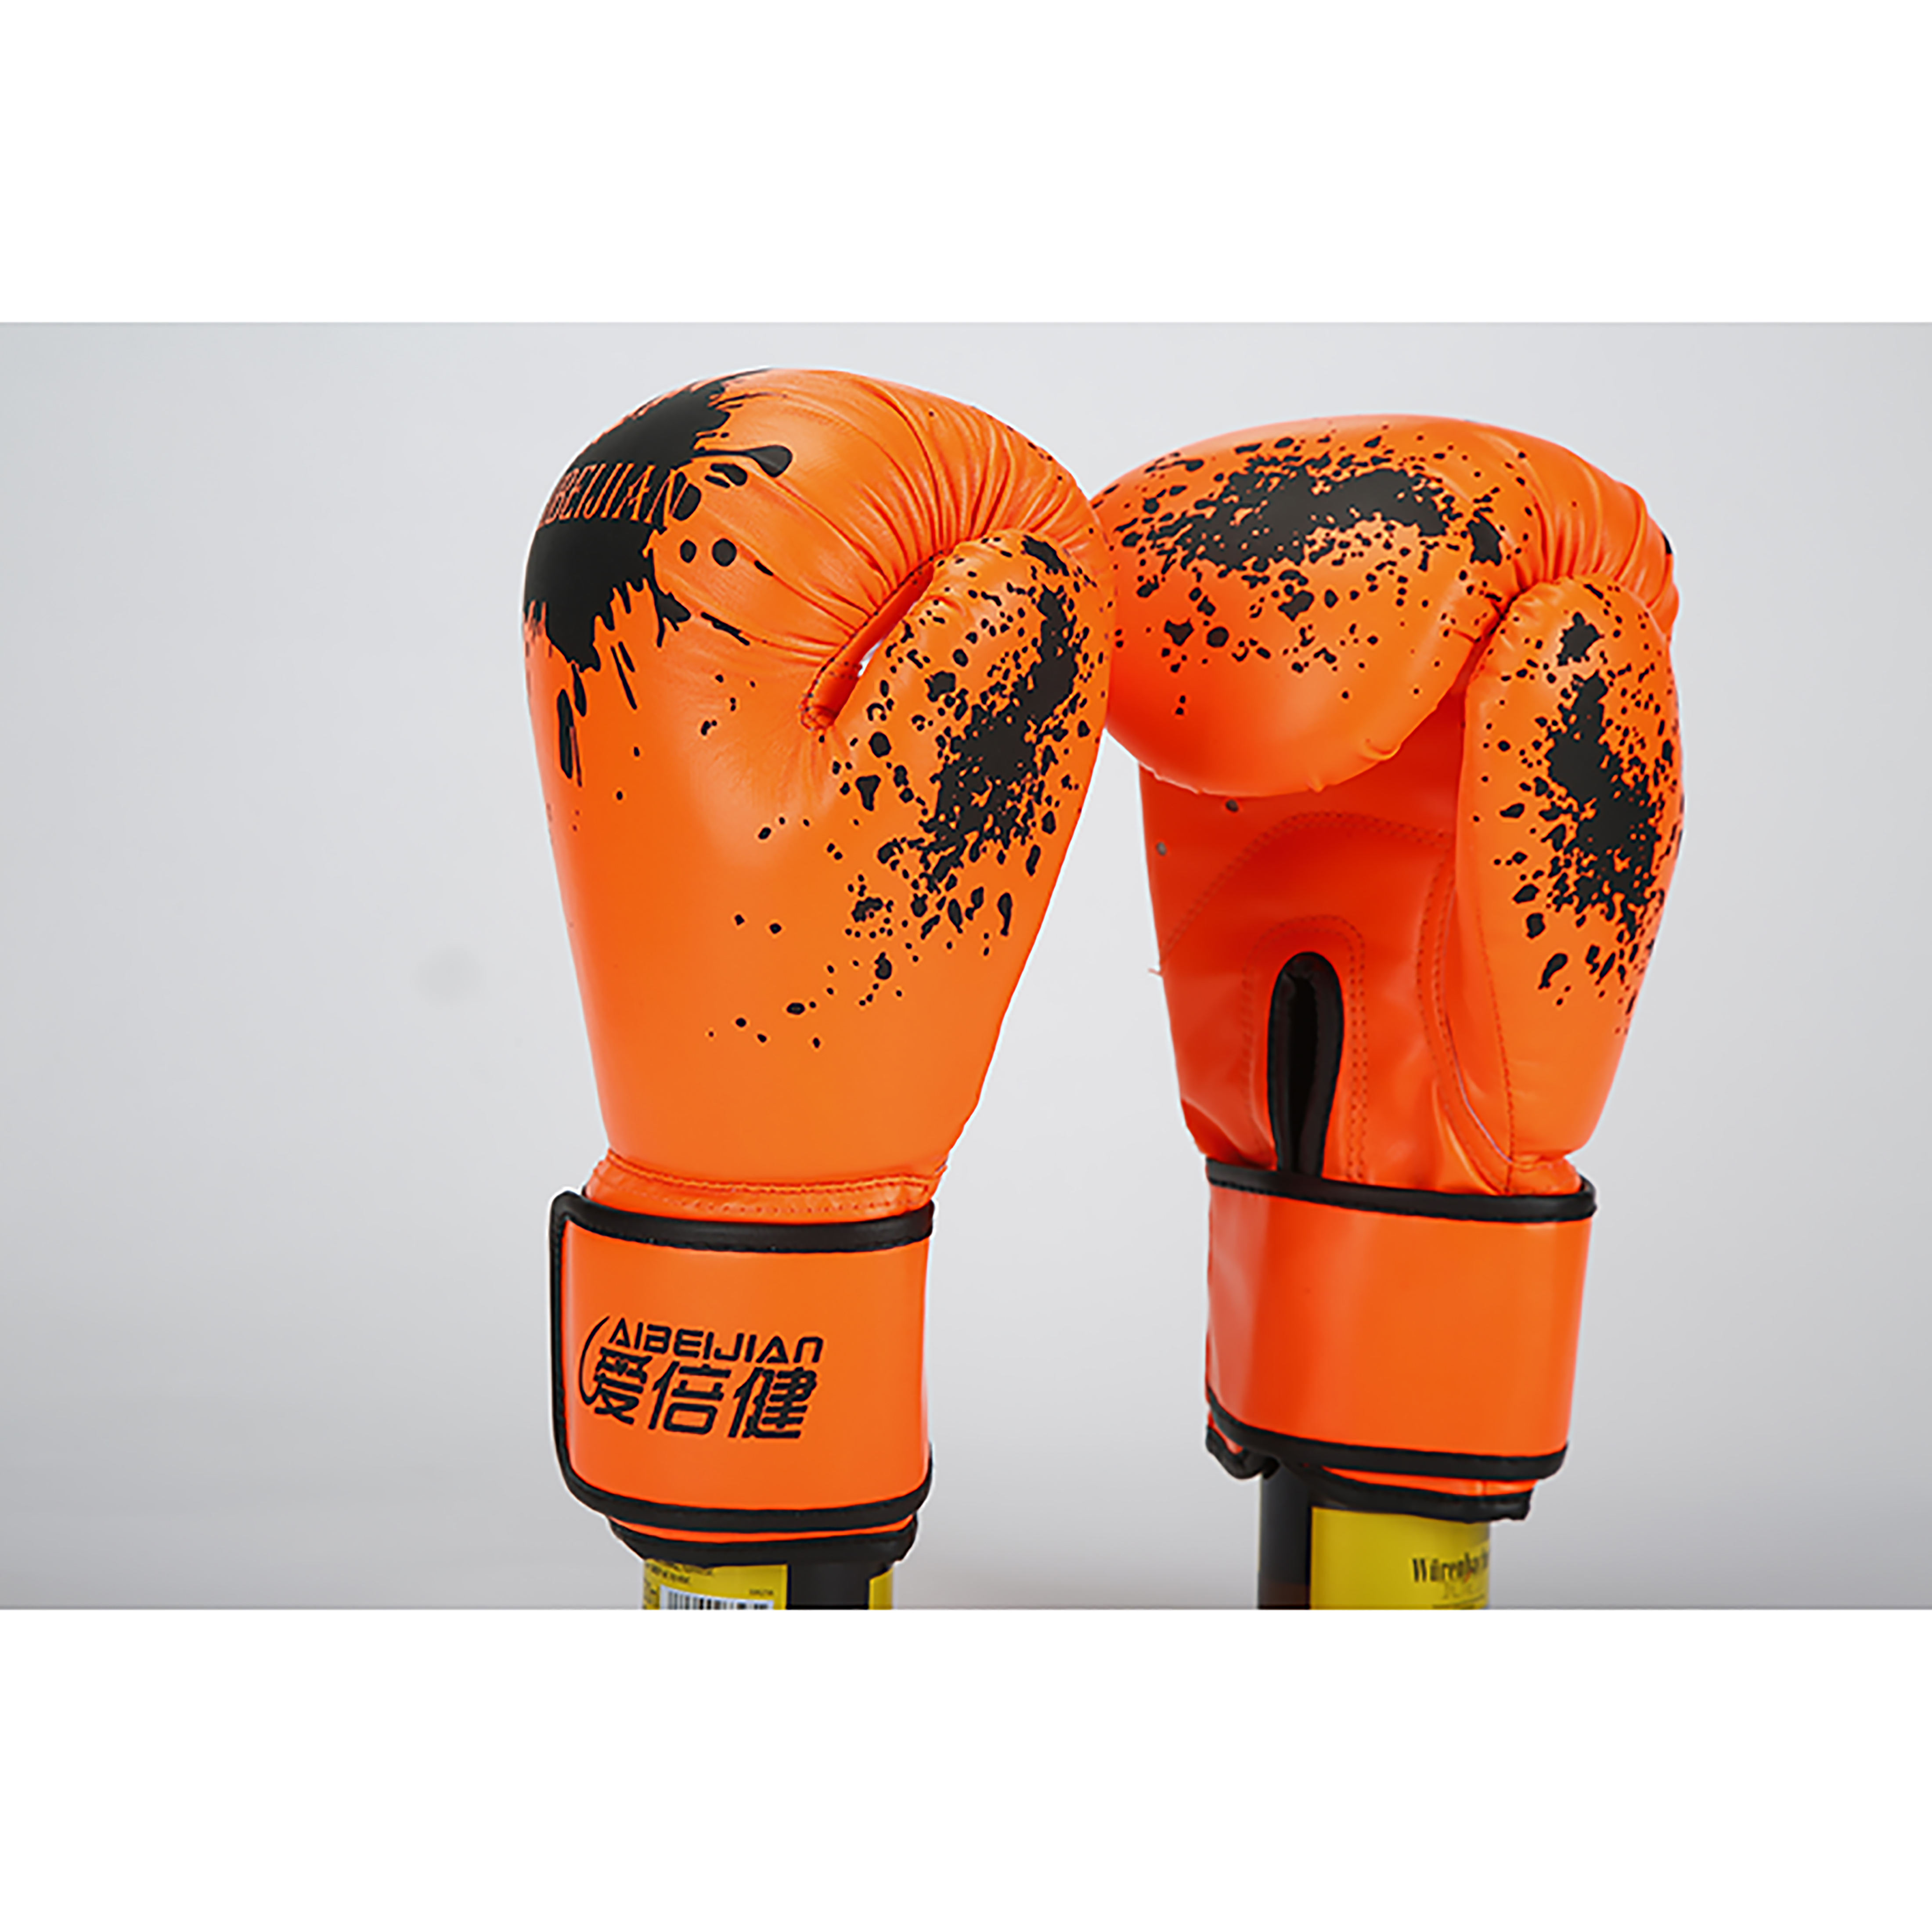 FANDING Factory Custom Professional Lace Black Green Yellow Leather Red Color Weight Material Boxing Glove